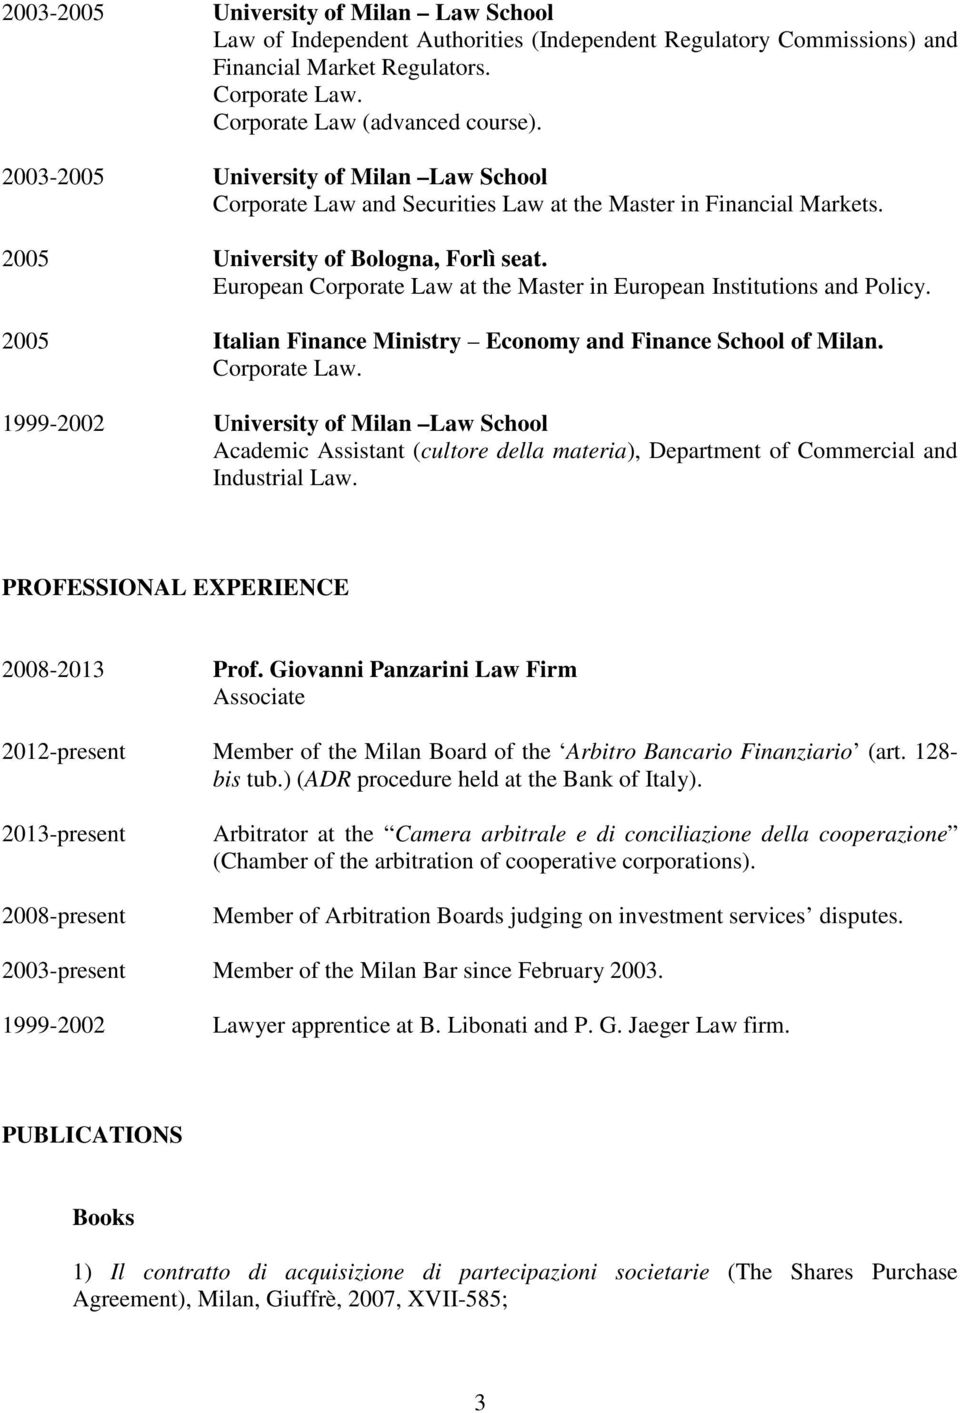 European Corporate Law at the Master in European Institutions and Policy. 2005 Italian Finance Ministry Economy and Finance School of Milan. Corporate Law. 1999-2002 University of Milan Law School Academic Assistant (cultore della materia), Department of Commercial and Industrial Law.